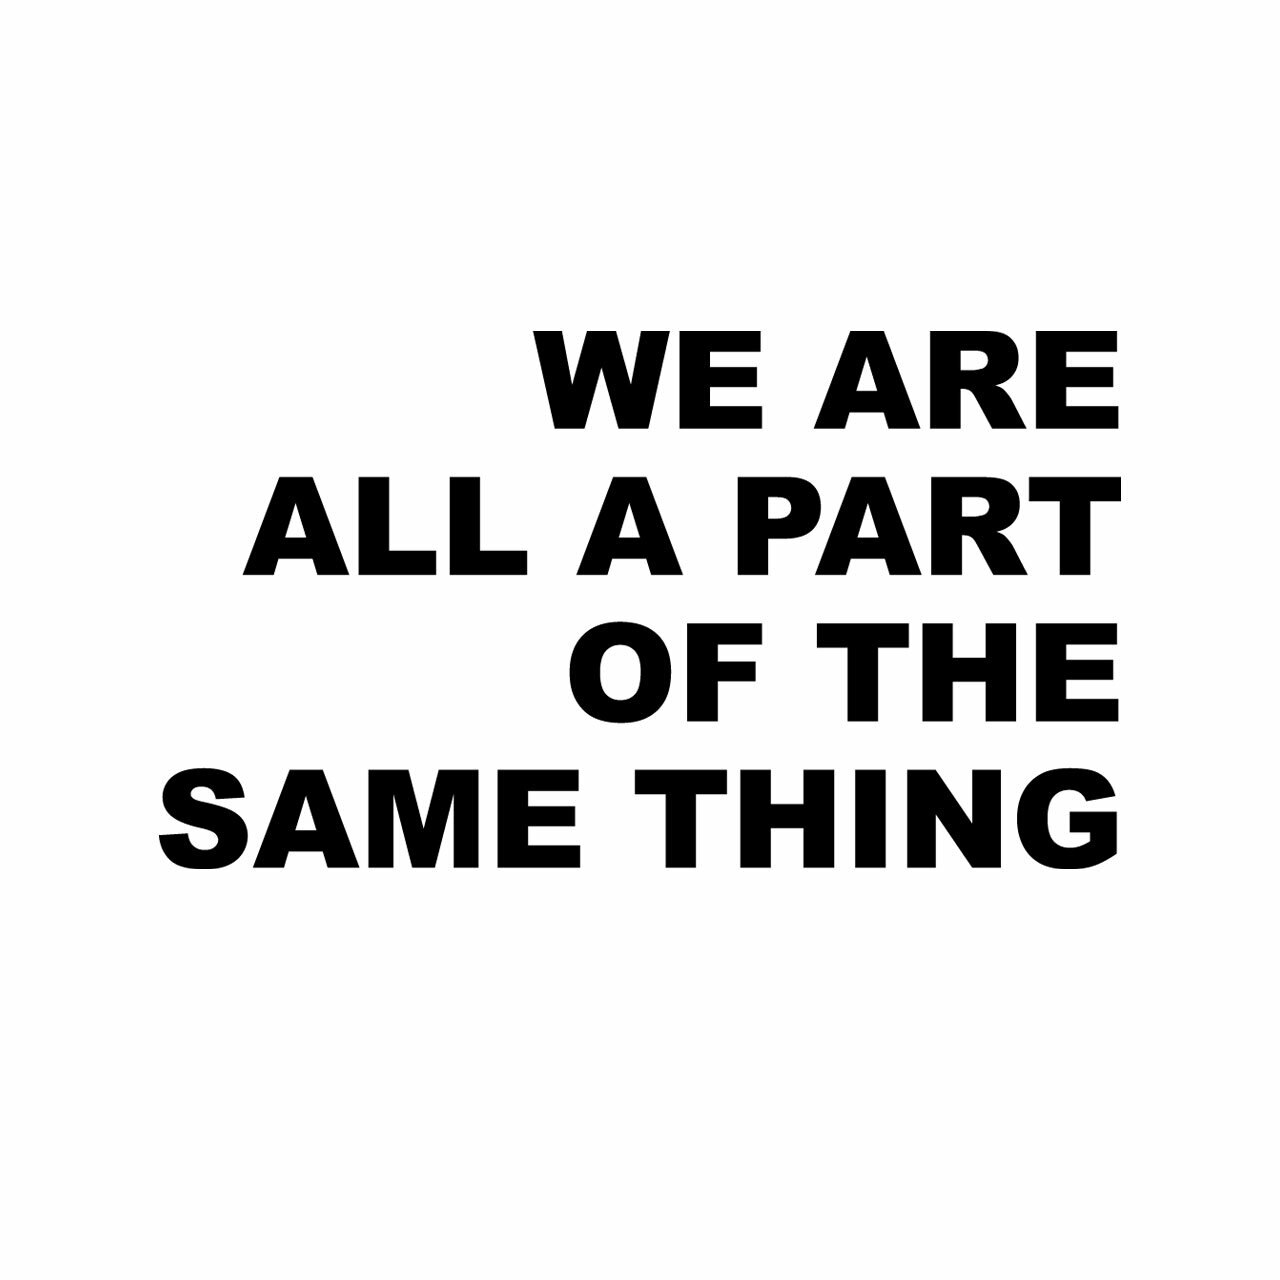 We Are All A Part Of The Same Thing written in black on a white background